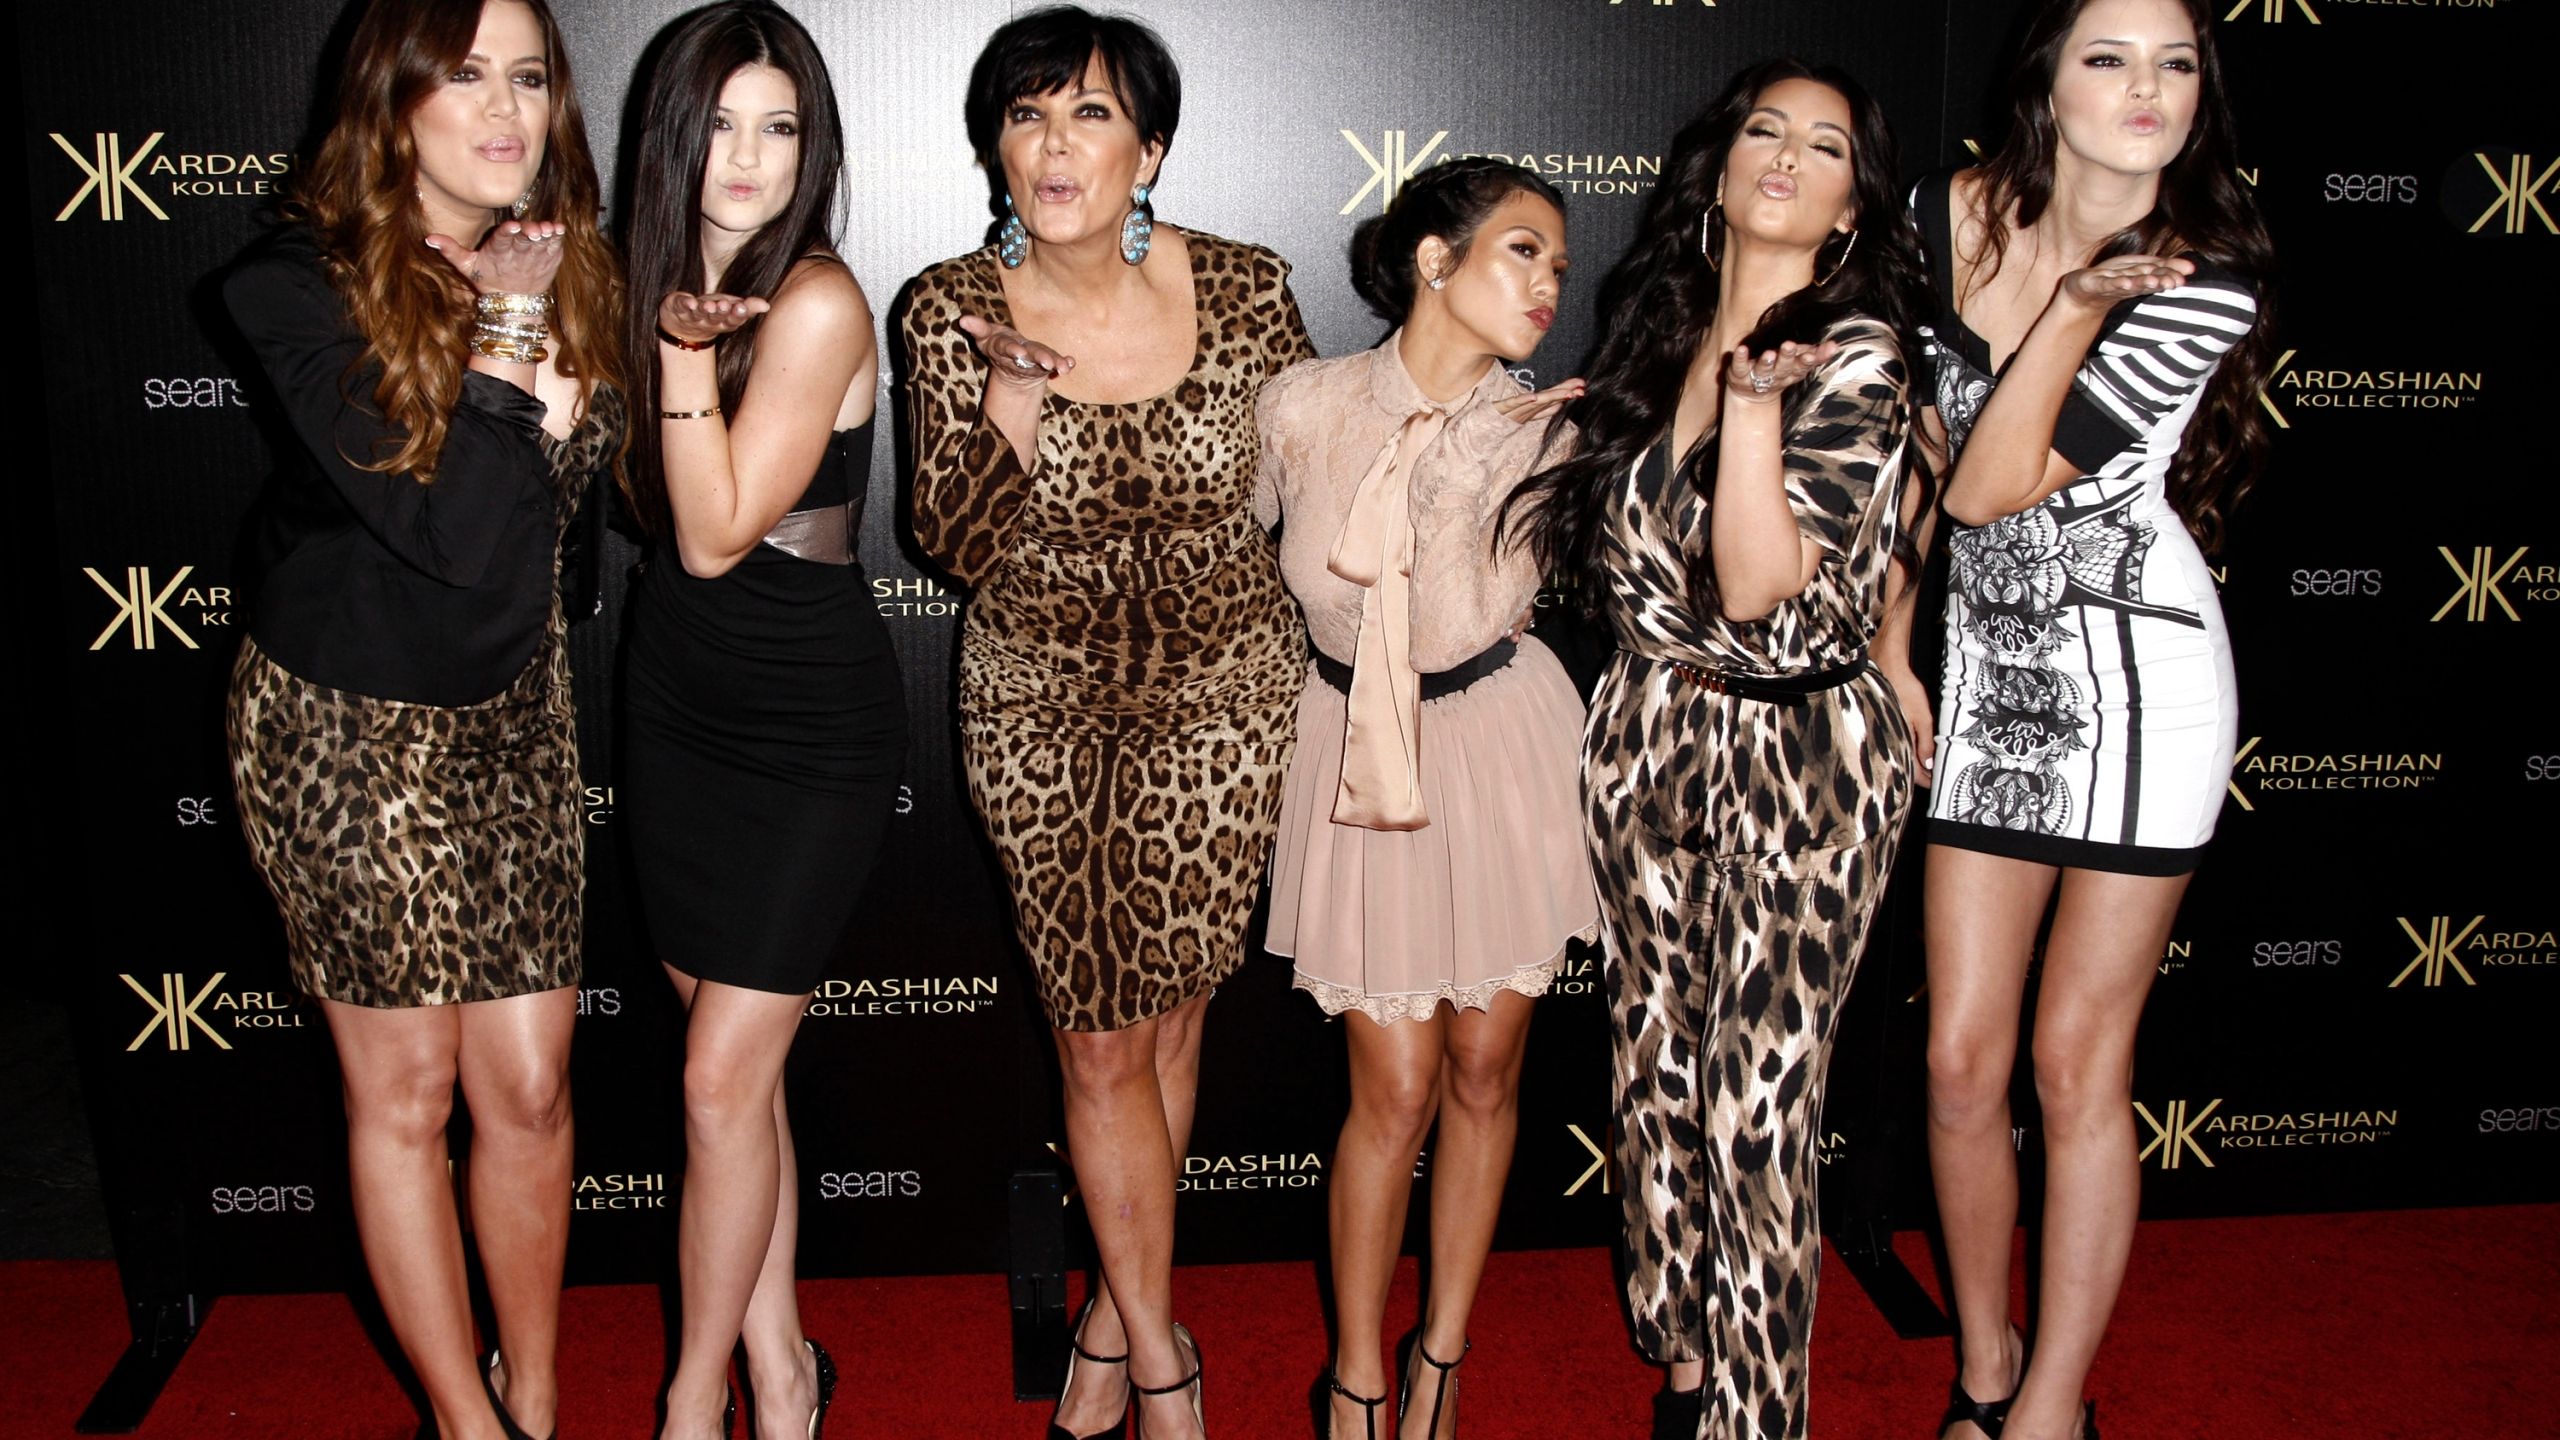 Khloe Kardashian, Kylie Jenner, Kris Jenner, Kourtney Kardashian, Kim Kardashian, and Kendall Jenner arrive at the Kardashian Kollection launch party in Los Angeles on Aug. 17, 2011. (AP Photo/Matt Sayles, file)